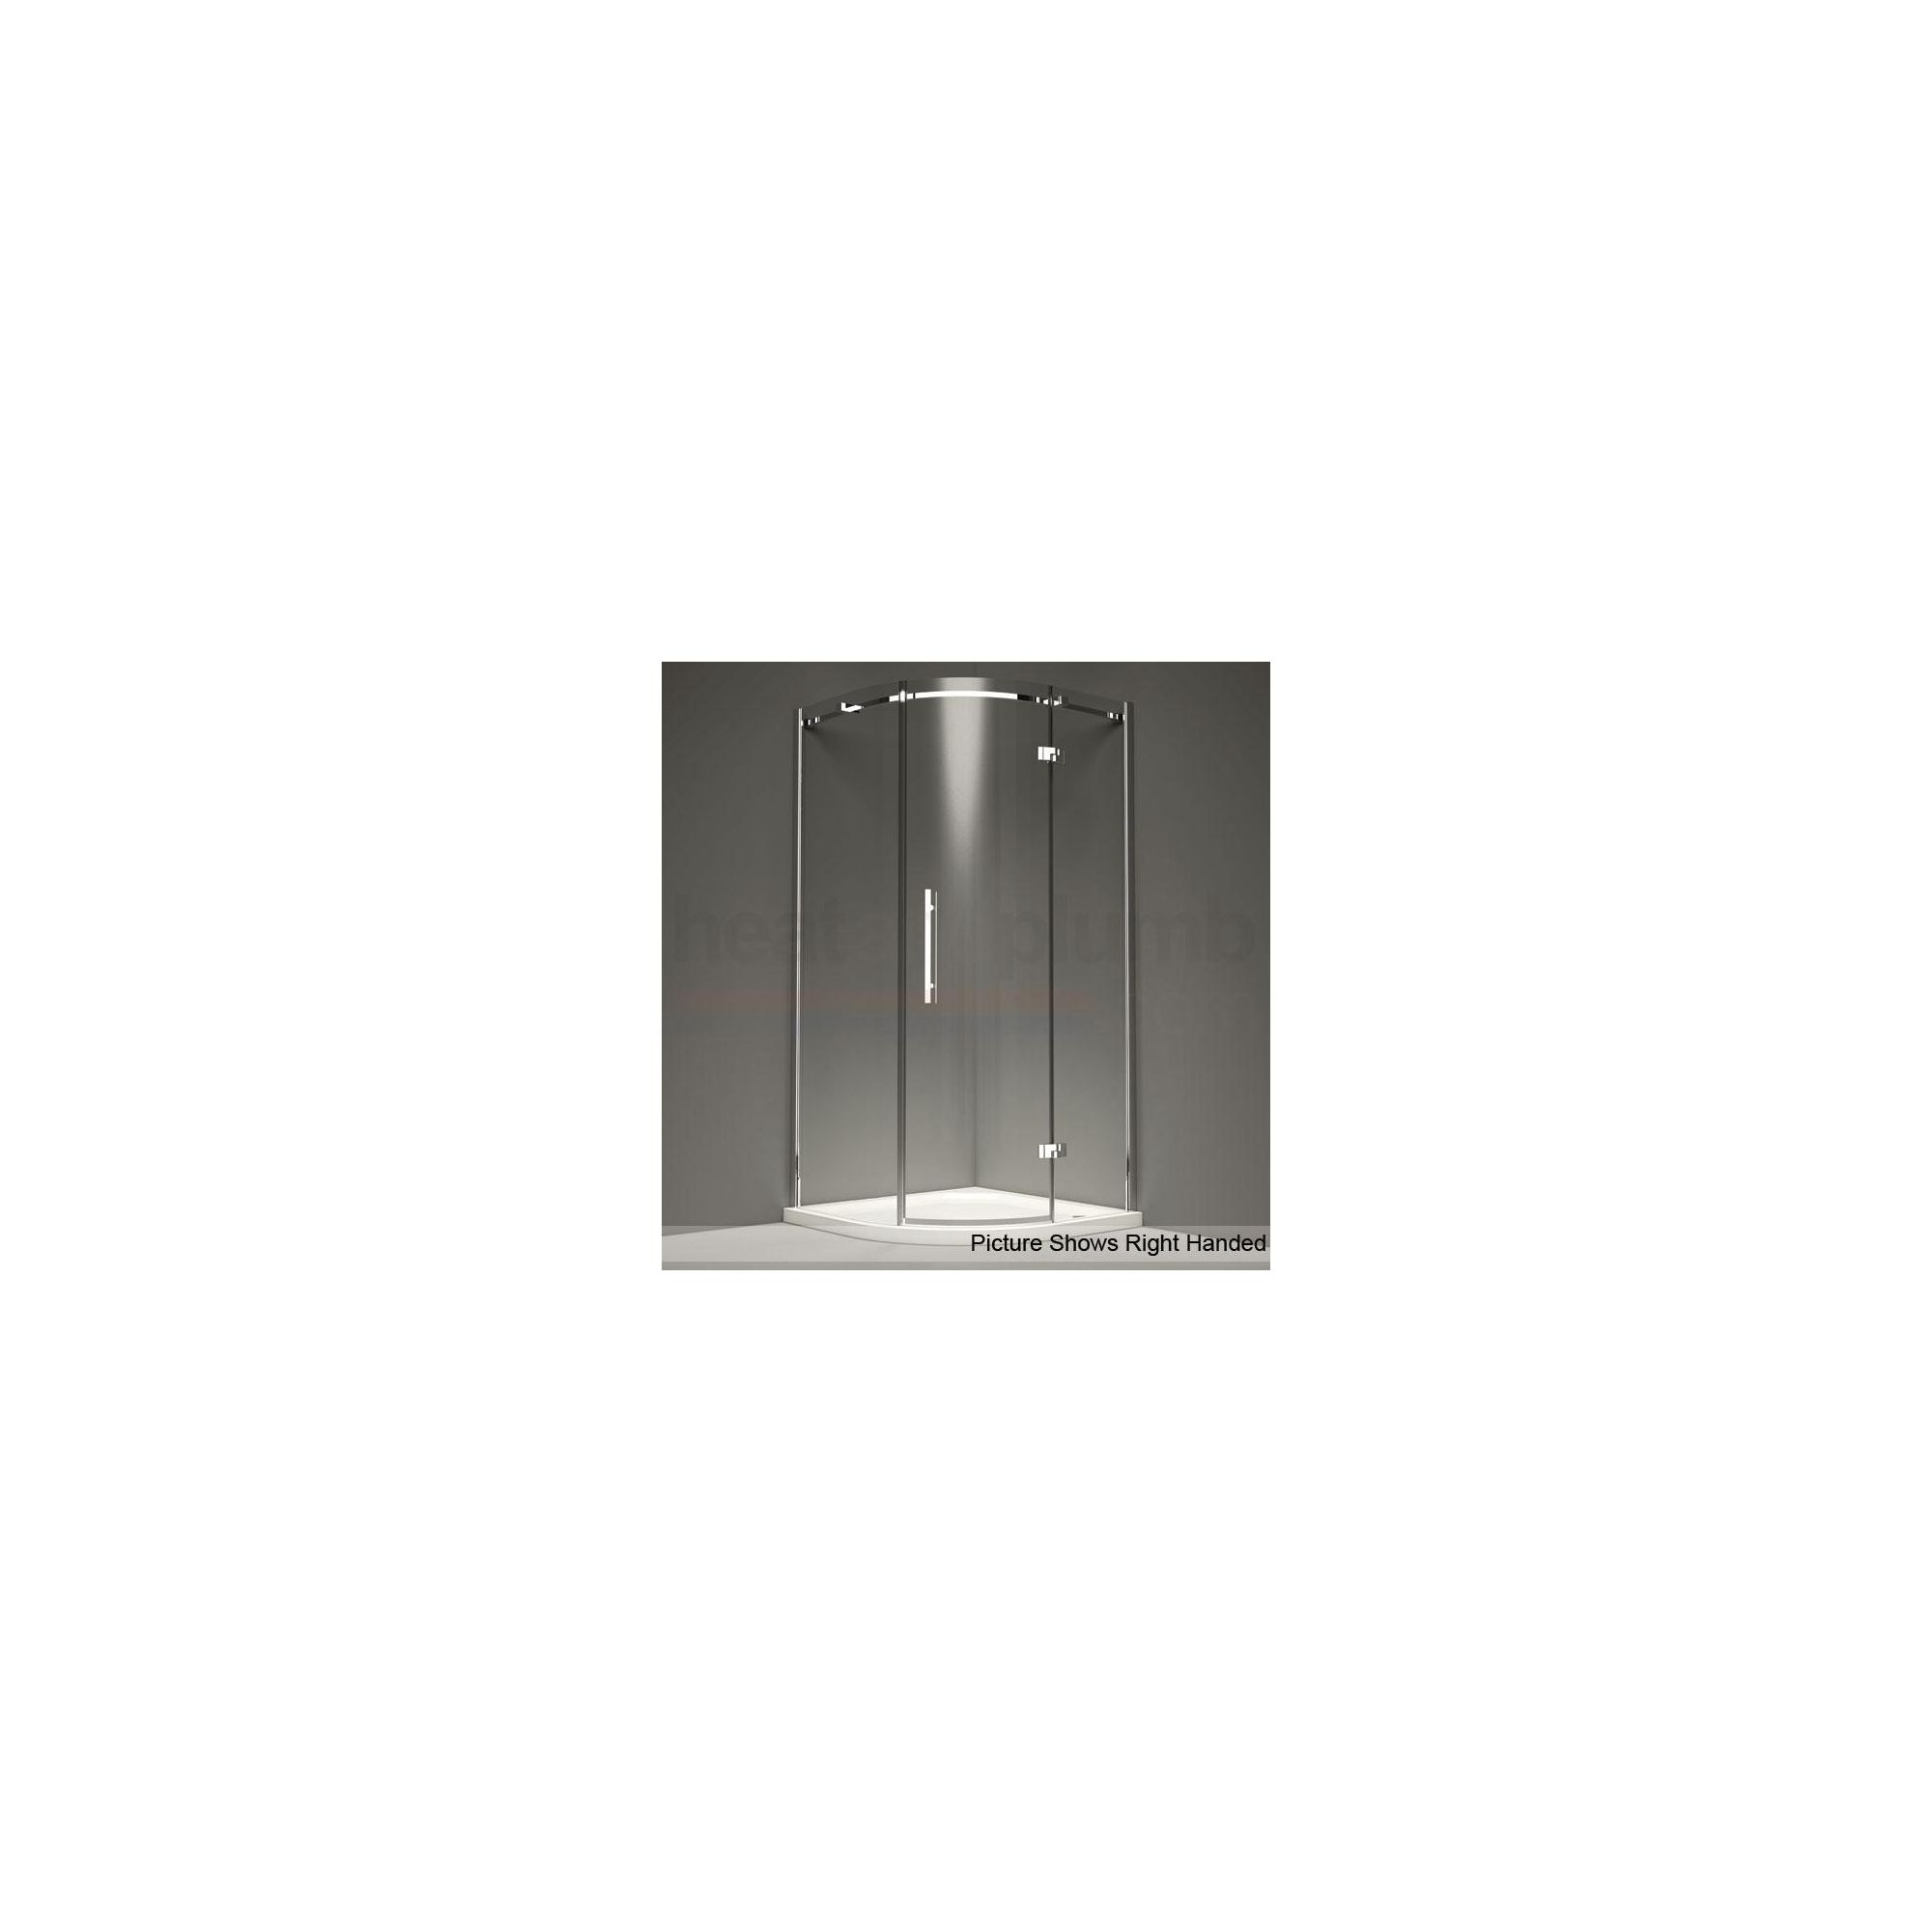 Merlyn Series 9 Hinged Door Curved Quadrant Shower Enclosure 800mm (Complete with Tray) - 8mm Glass at Tesco Direct